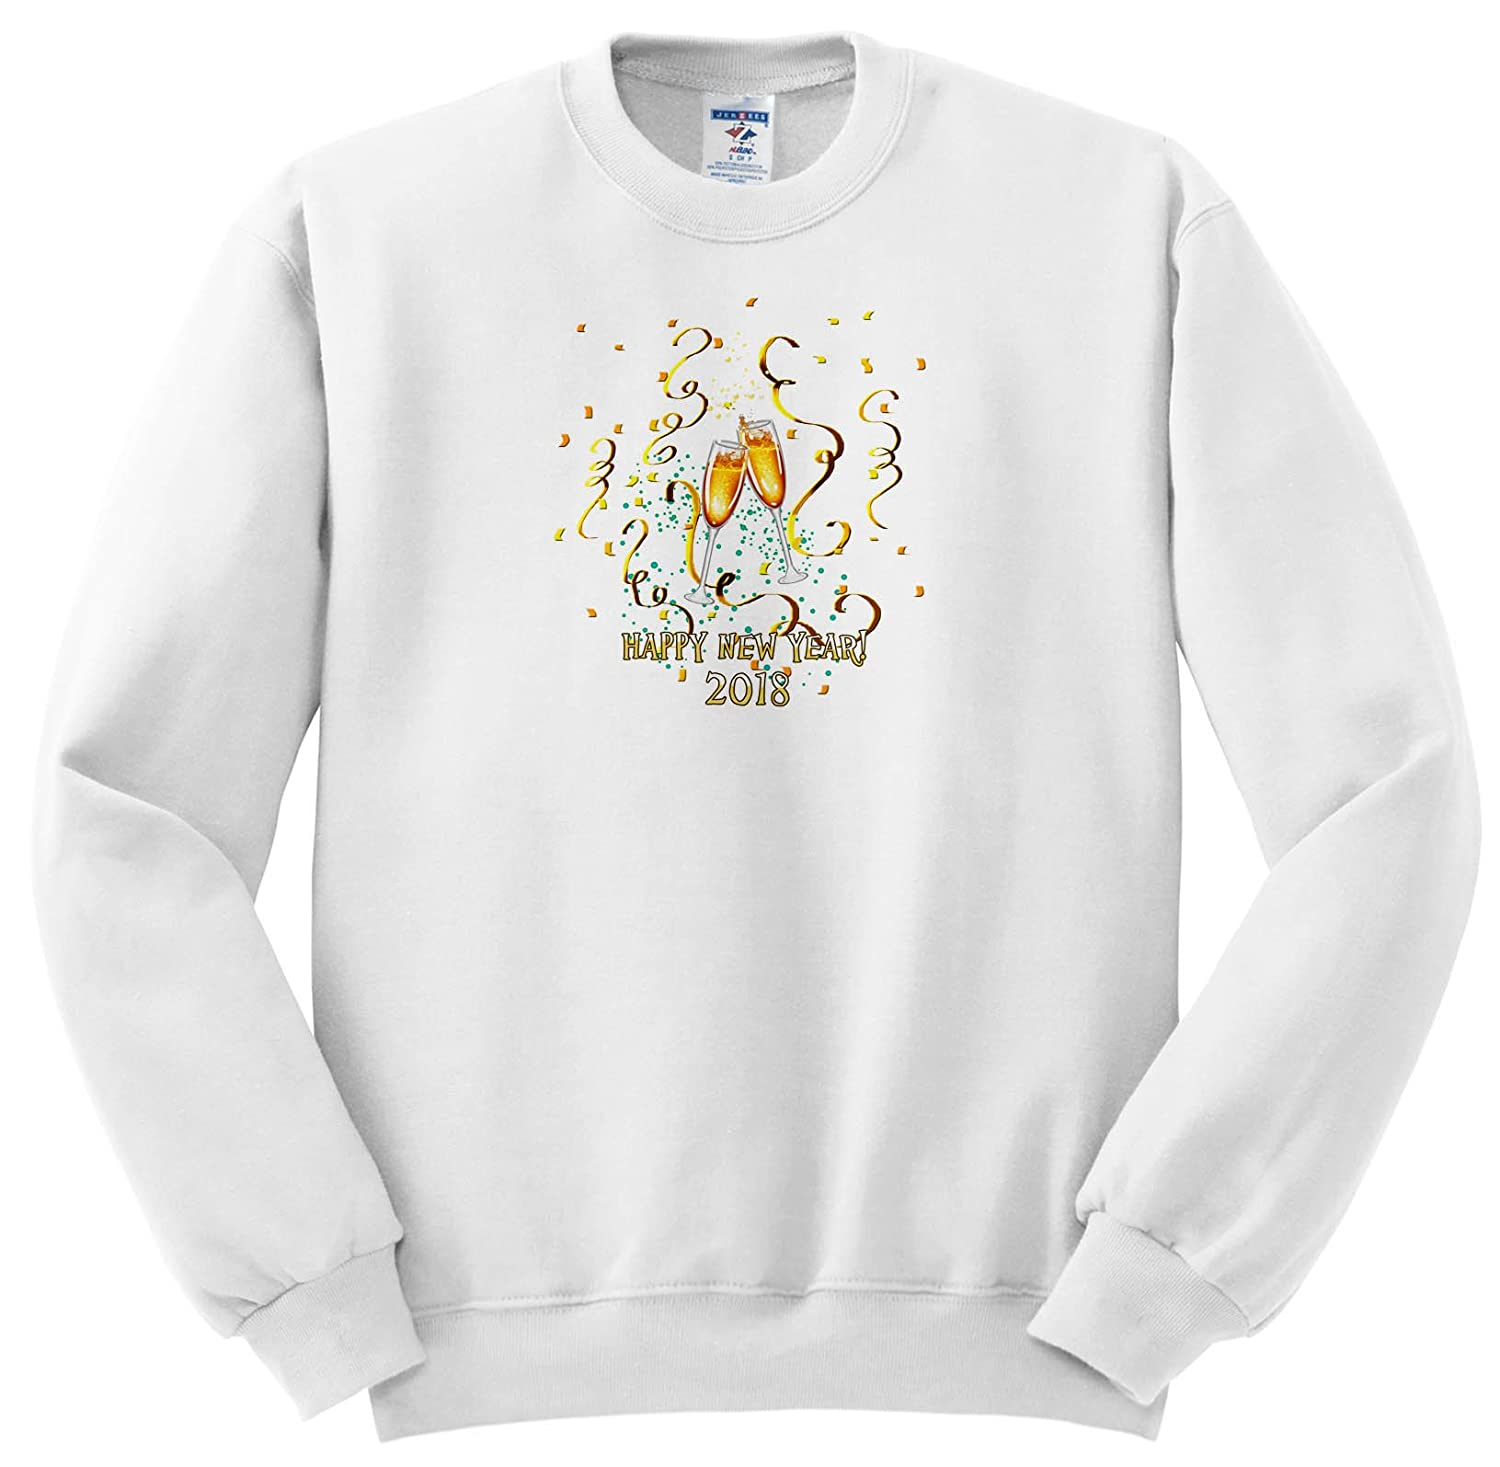 71329c3e2e90a6 Dream Essence Designs-Holidays New Year - Happy New Year 2018 With  Champagne Glasses, Confetti and Gold Ribbon. - Sweatshirts - Youth  Sweatshirt XS(2-4) ...